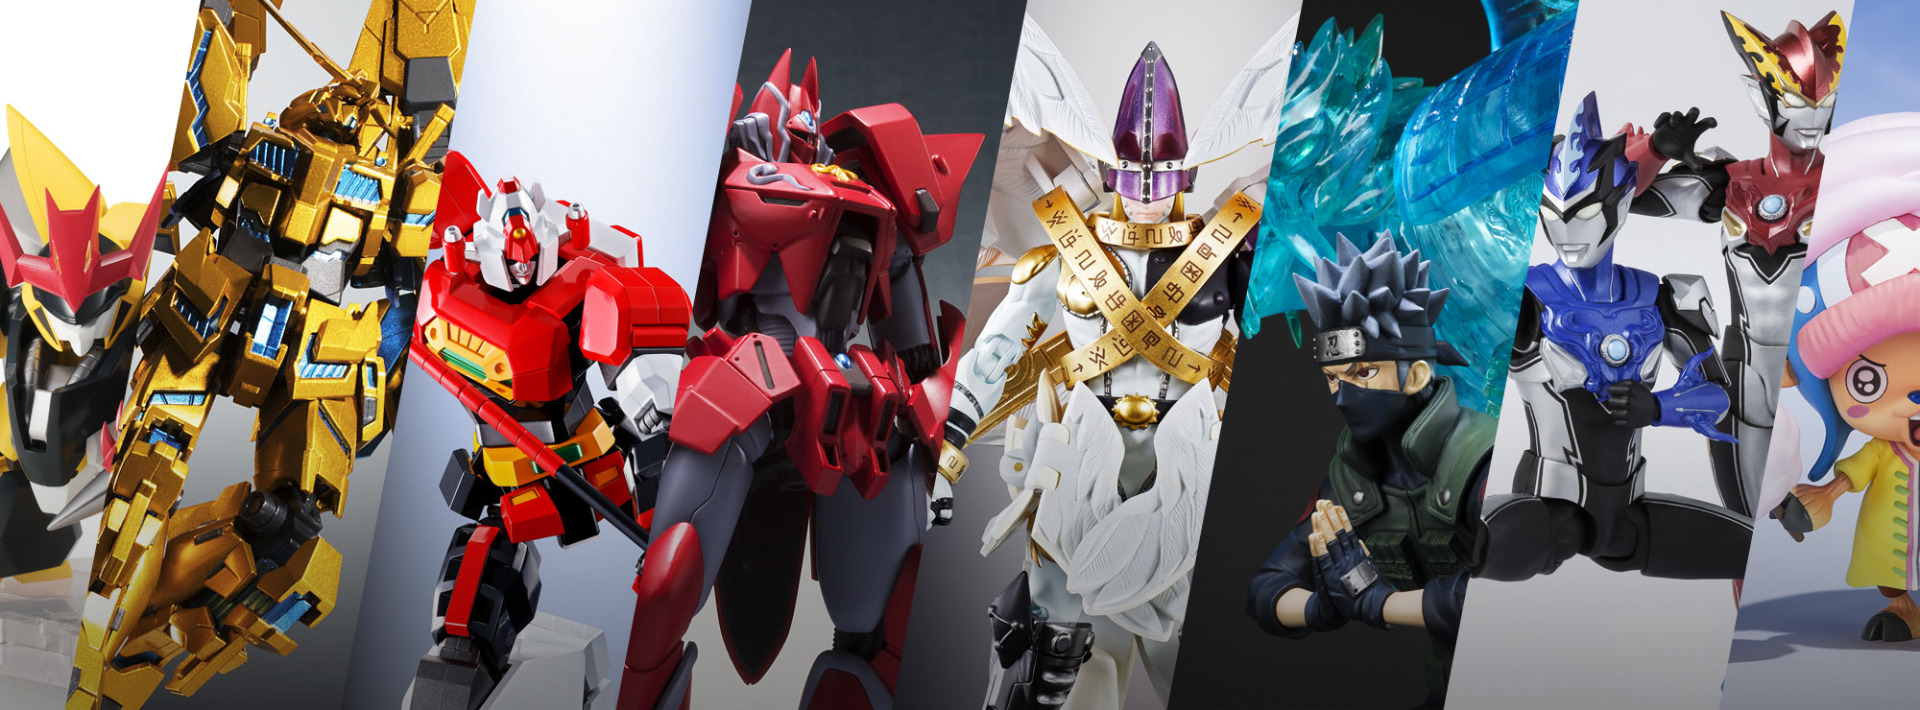 TamashiiNations New pre-order items